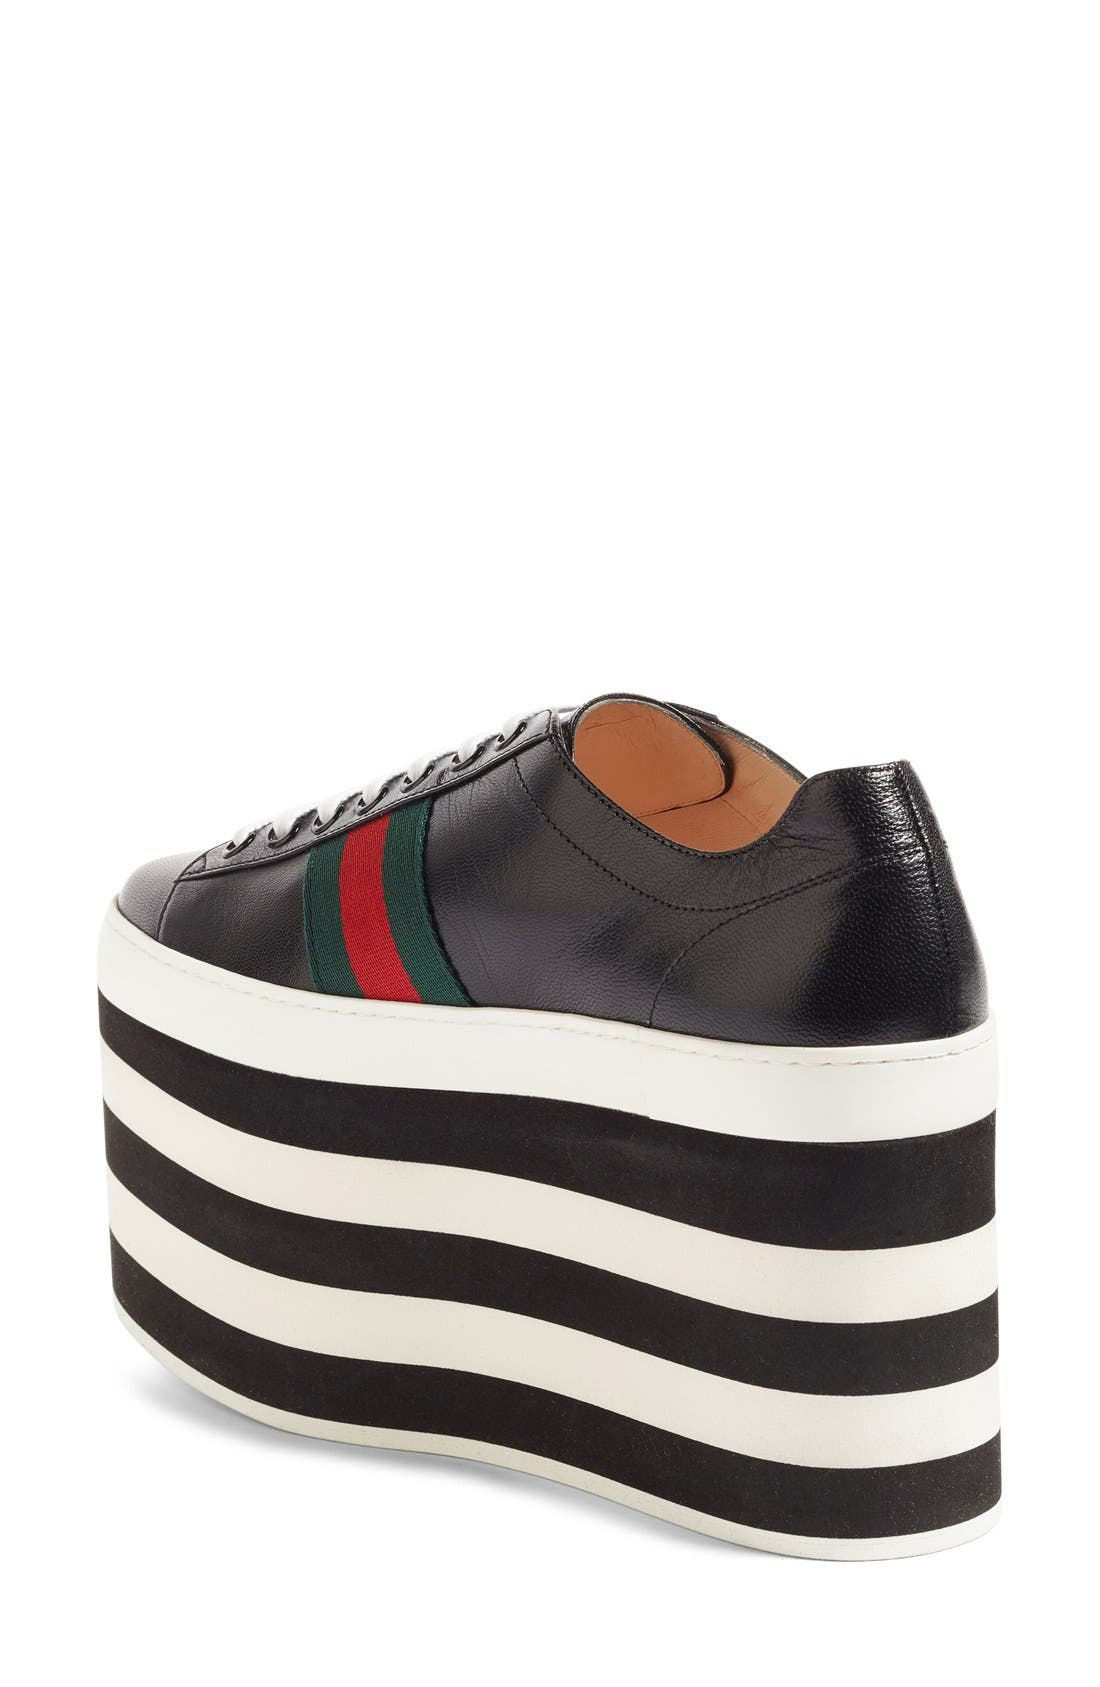 Alternate Image 2  - Gucci Peggy Platform Sneaker (Women)